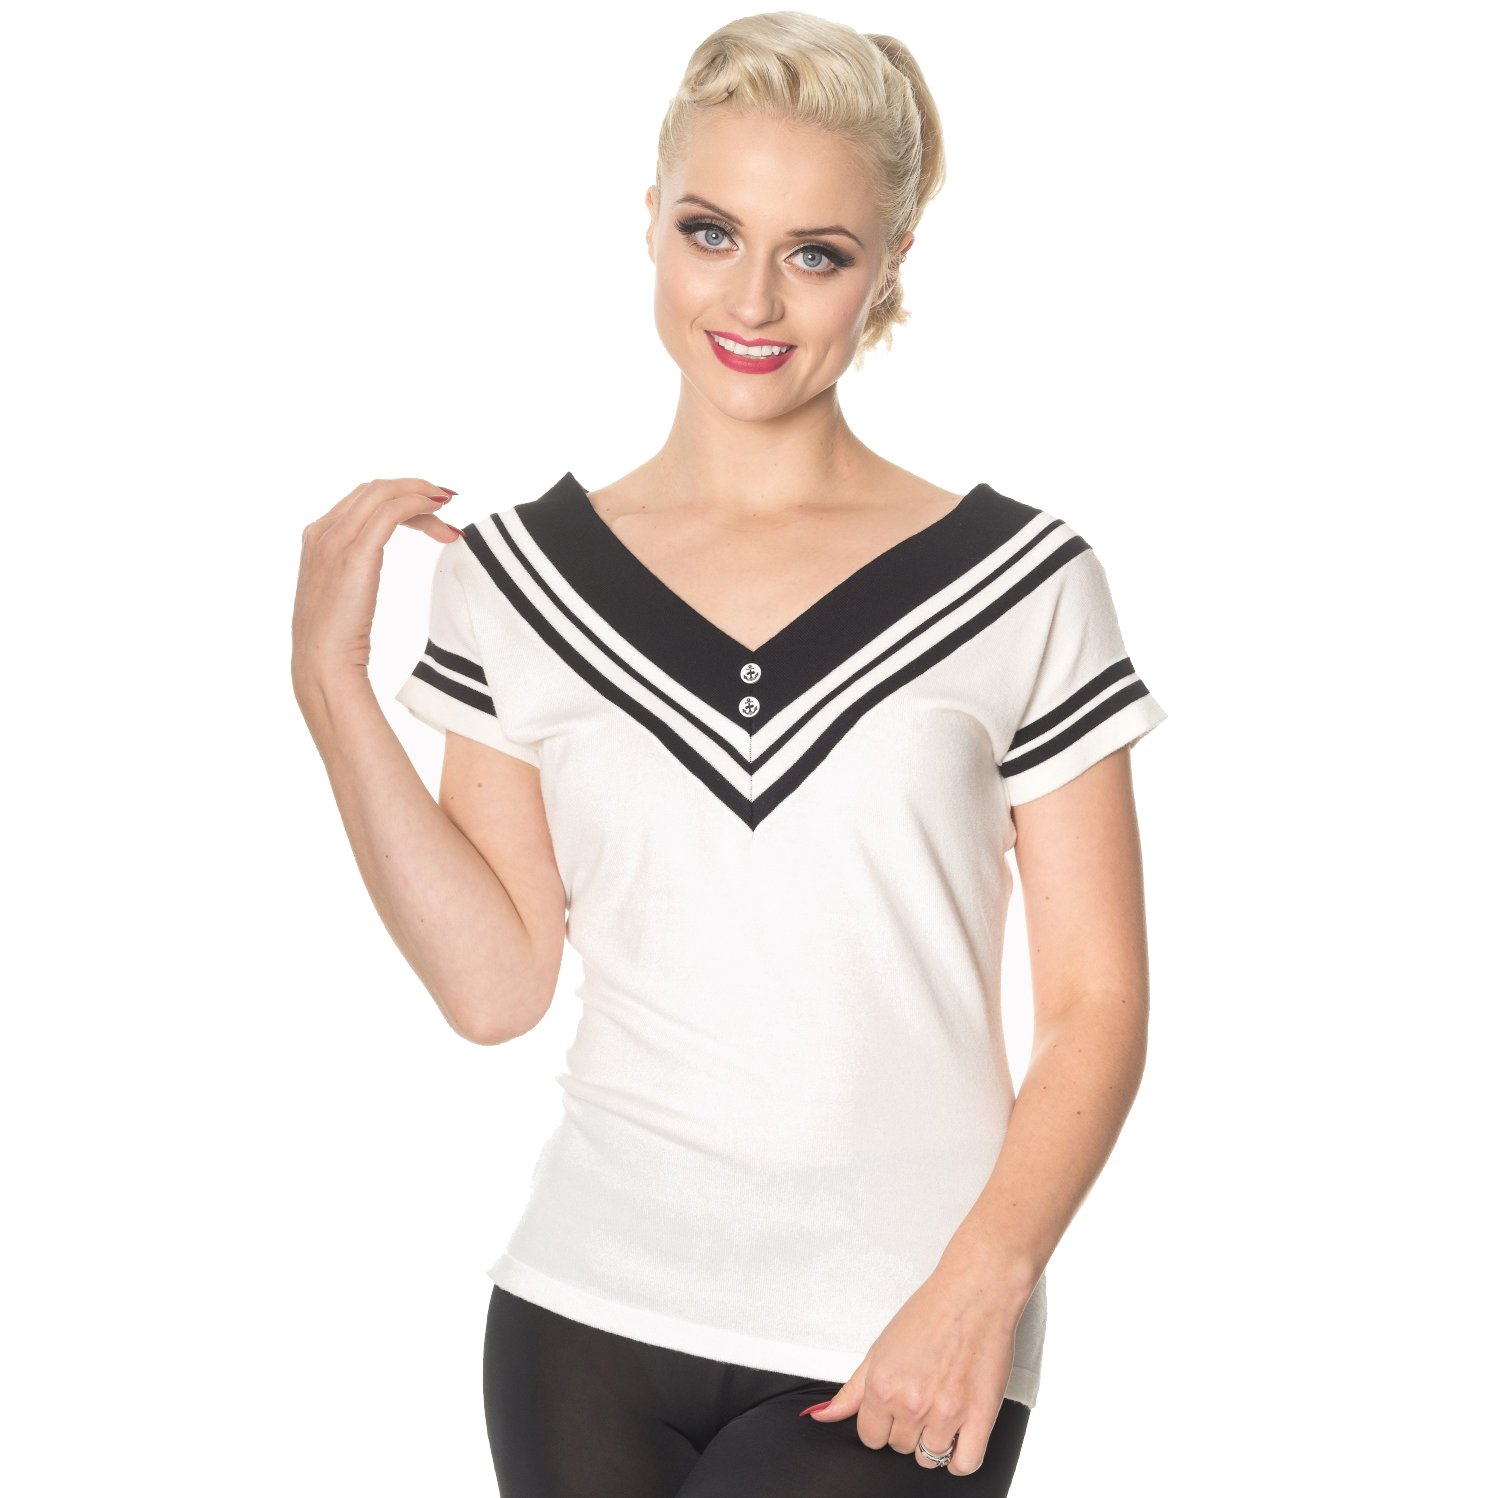 1920s Blouses & Shirts History Dancing Days Cedar Nautical Sailor Short Sleeve 1950s Vintage Retro Sweater Top £26.99 AT vintagedancer.com